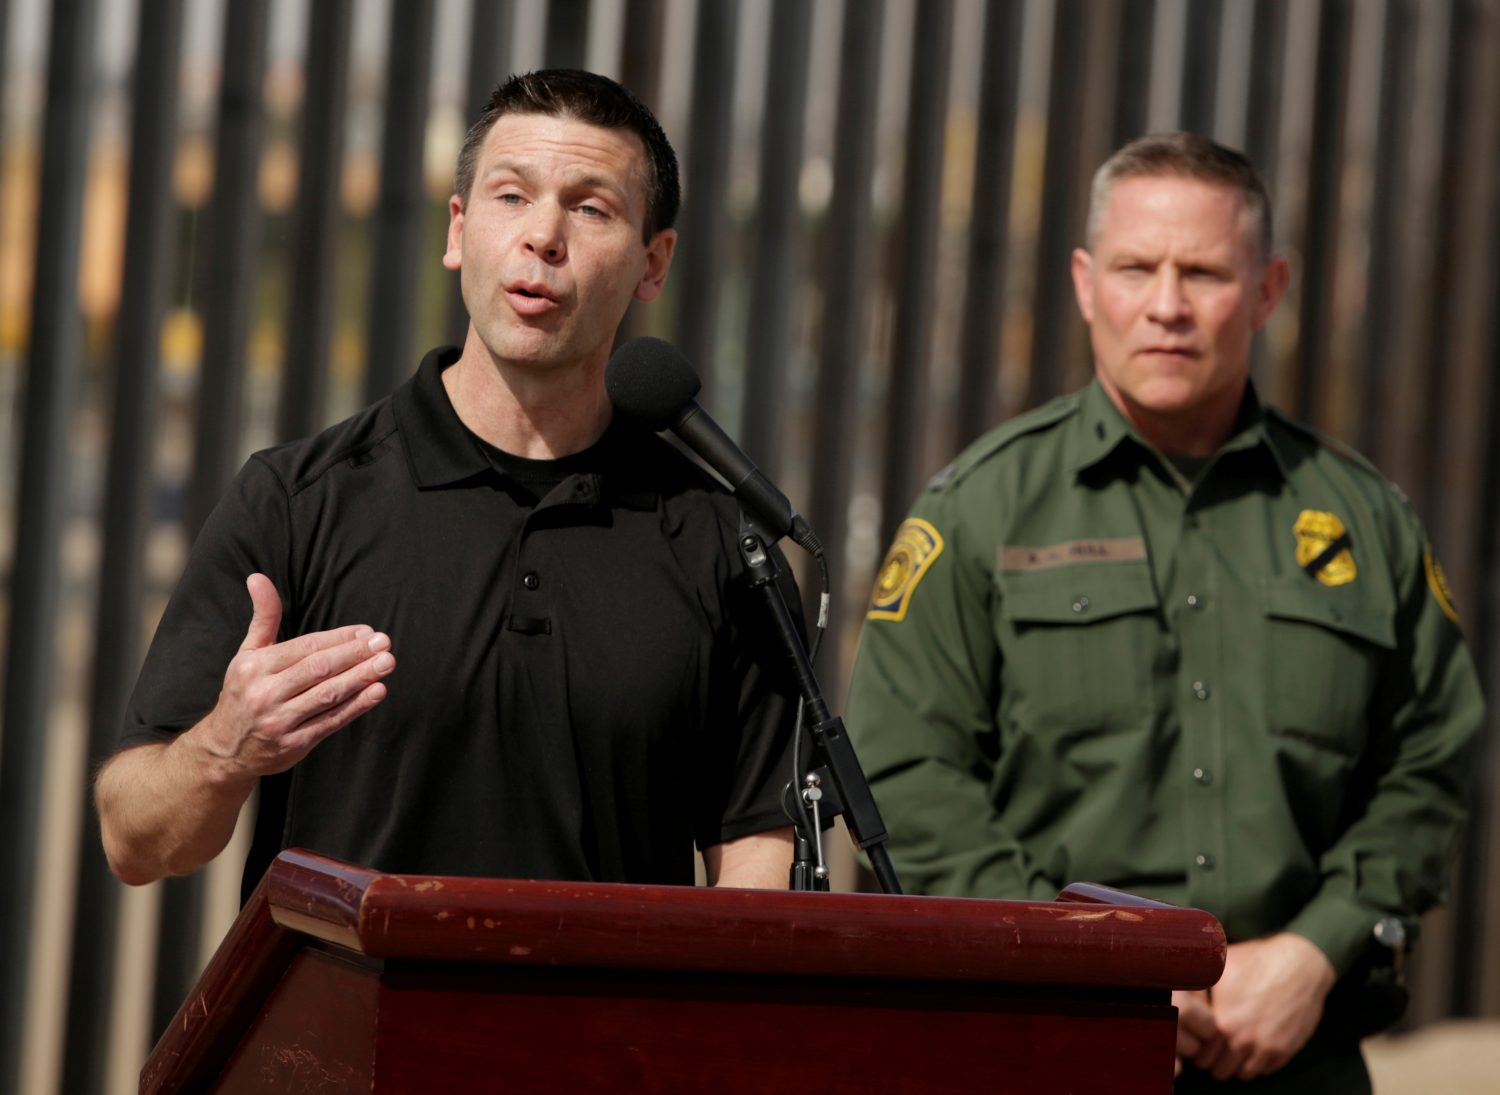 FILE PHOTO: U.S. Customs and Border Protection Commissioner Kevin K. McAleenan speaks about the impact of the dramatic increase in illegal crossings that continue to occur along the Southwest during a news conference, in El Paso, Texas March 27, 2019. REUTERS/Jose Luis Gonzalez/File Photo